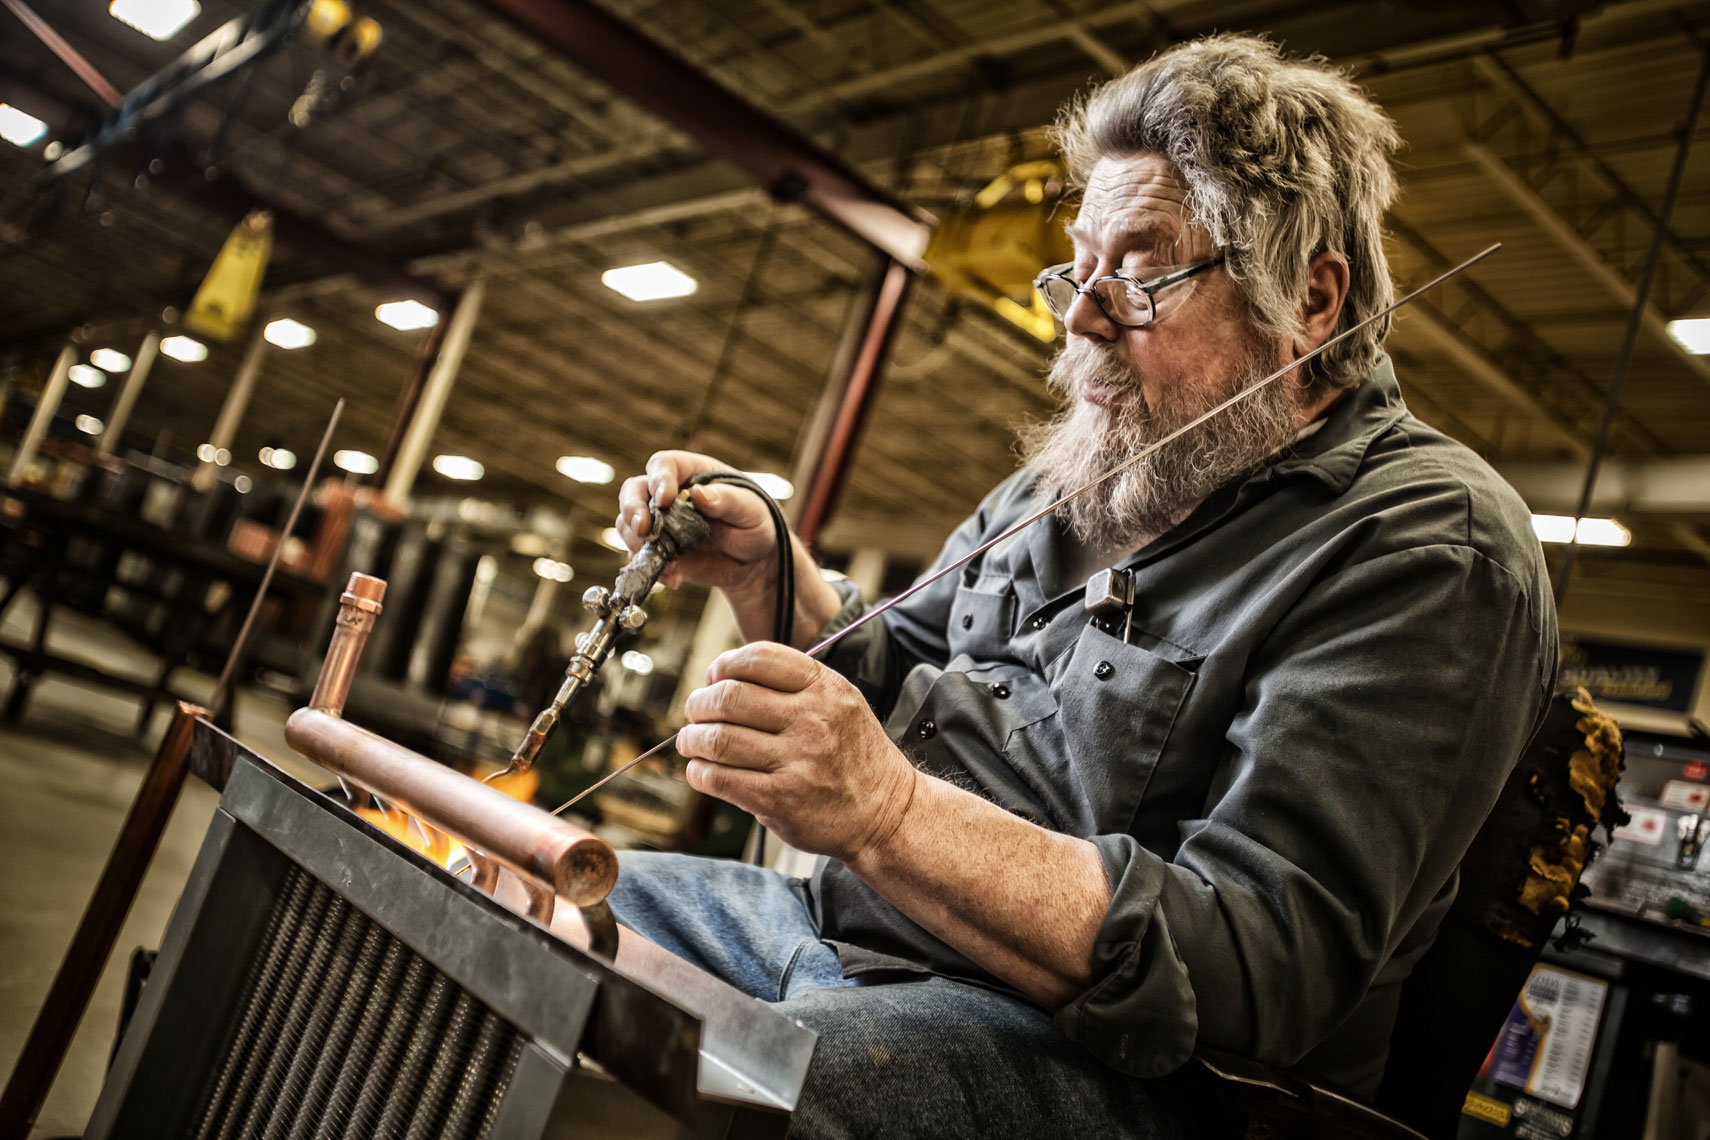 Worker soldering/radiator factory/industrial photography